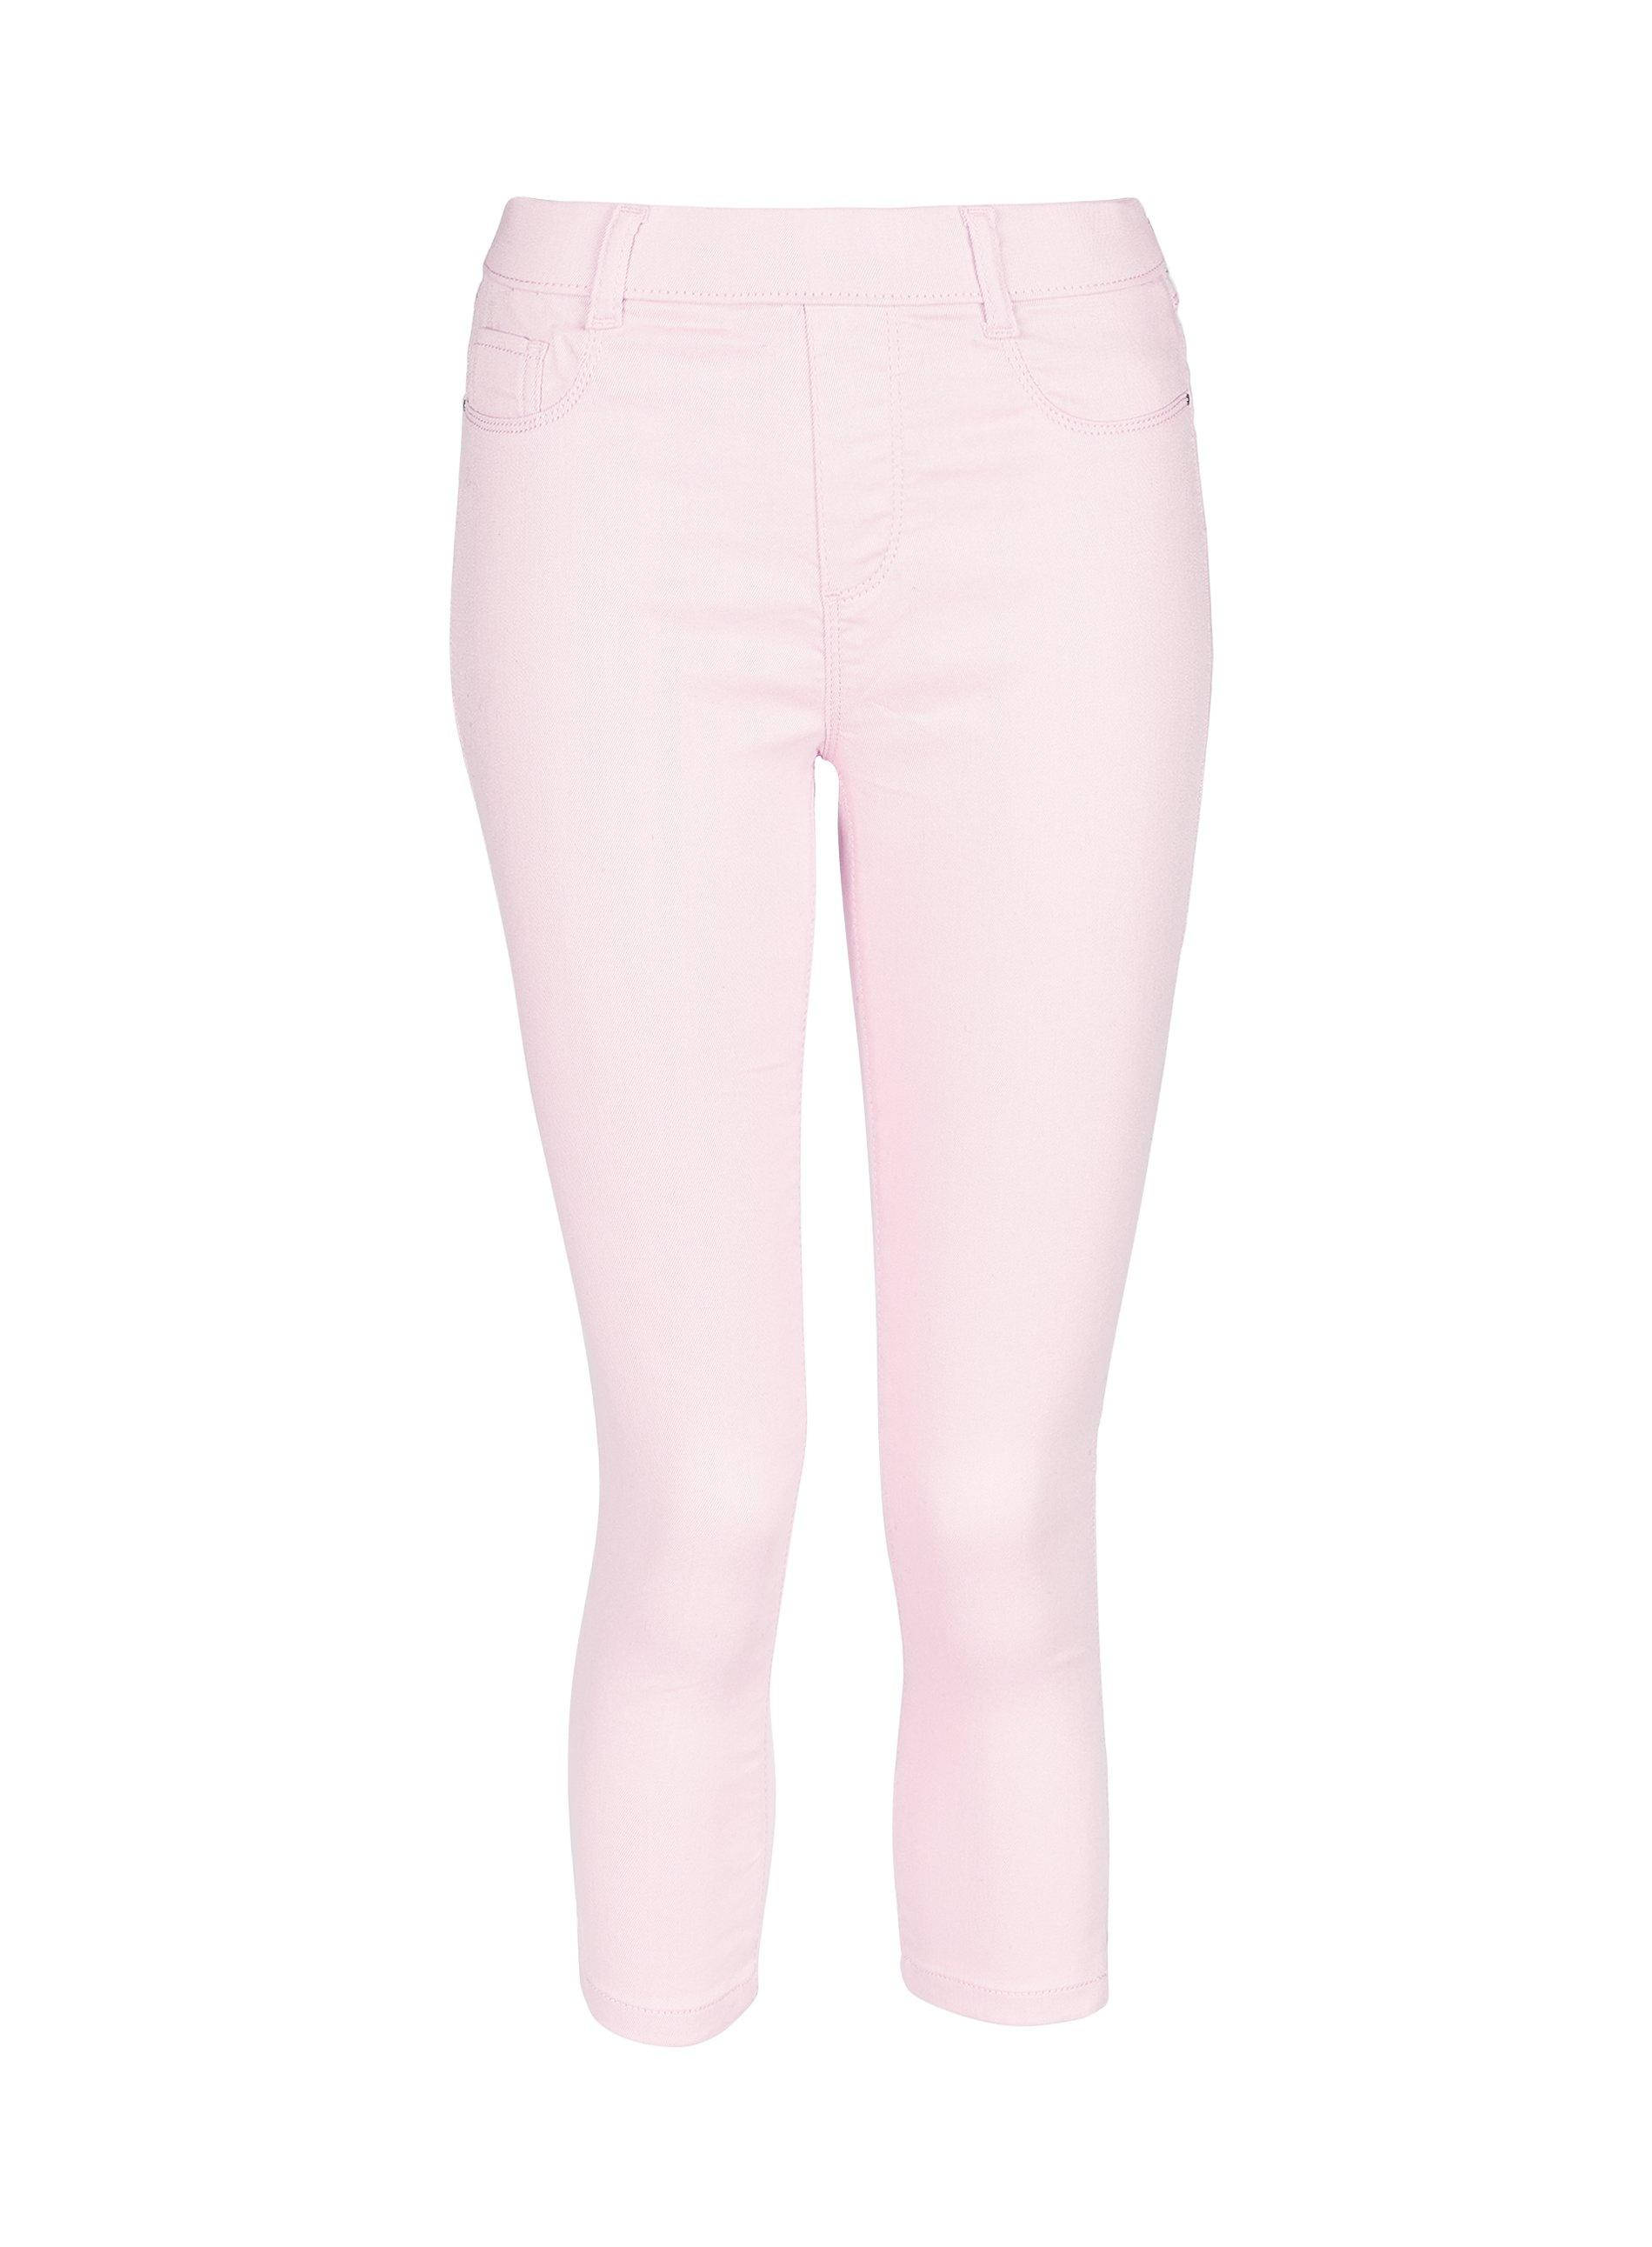 a71c1a9e4e870 Dorothy Perkins Pale Pink 'eden' Super Soft Cropped Jeggings in Pink ...